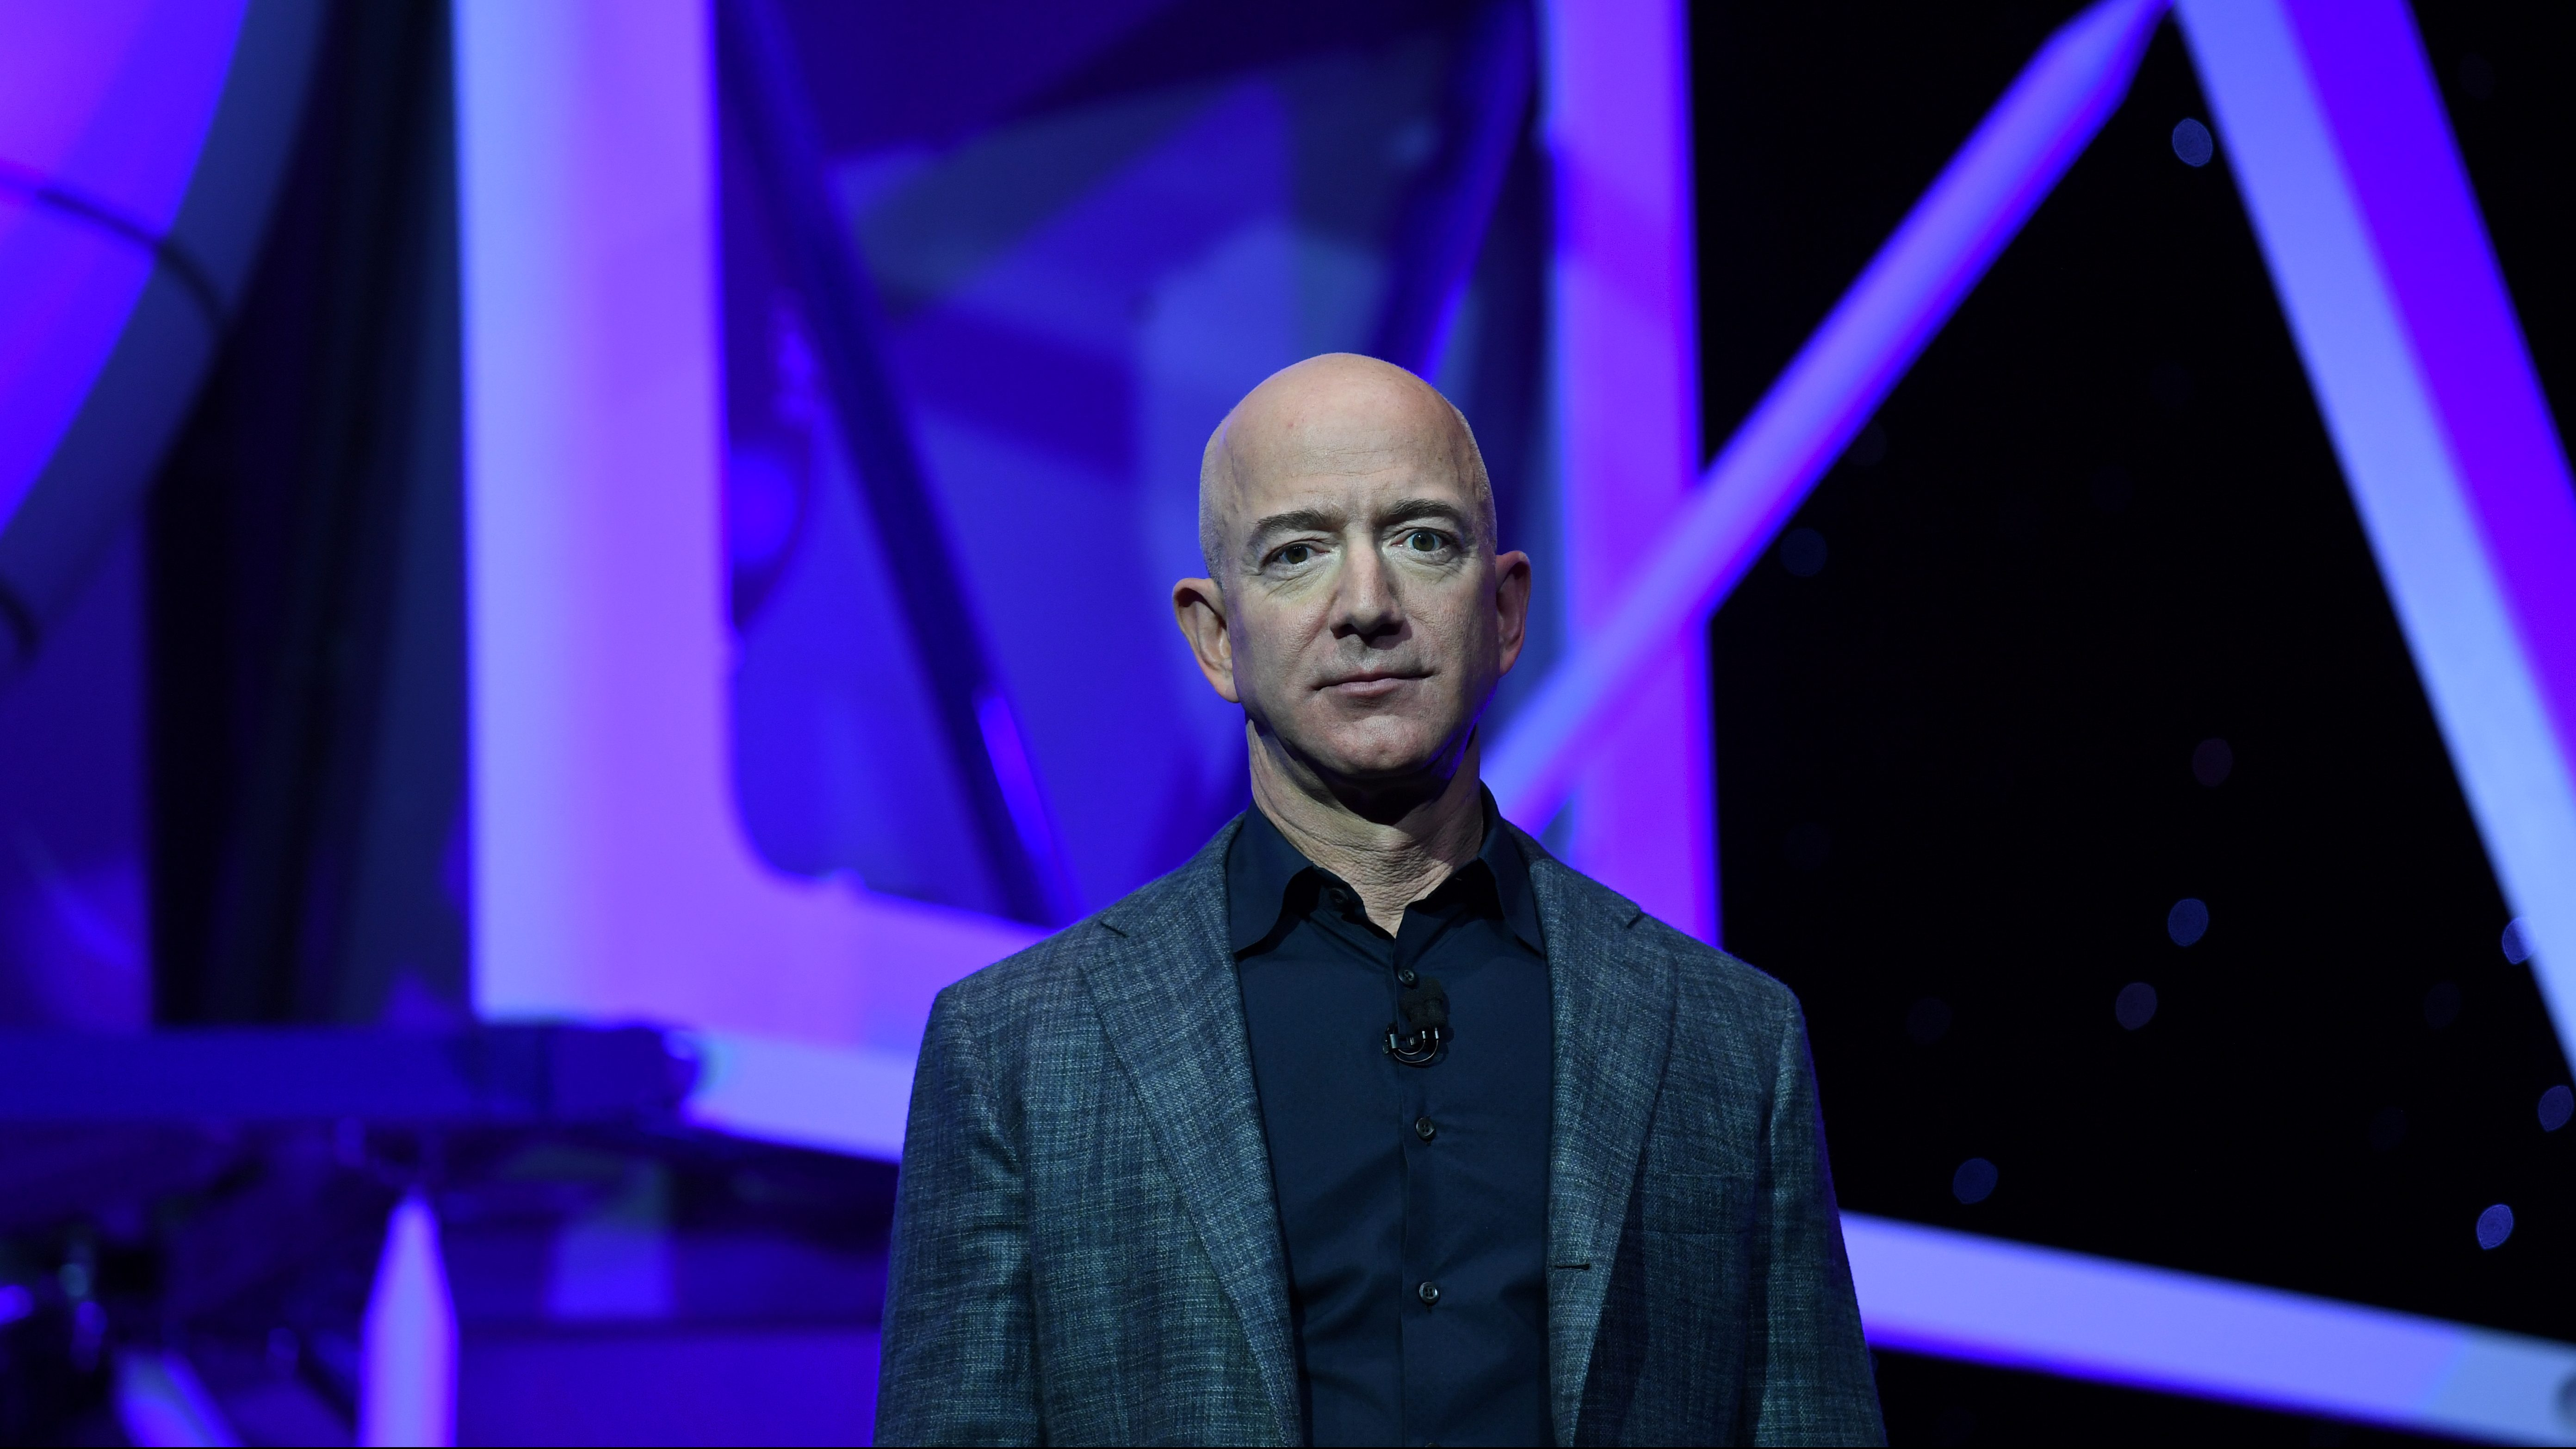 Amazon CEO Jeff Bezos looks a little blue while unveiling his new spaceship.